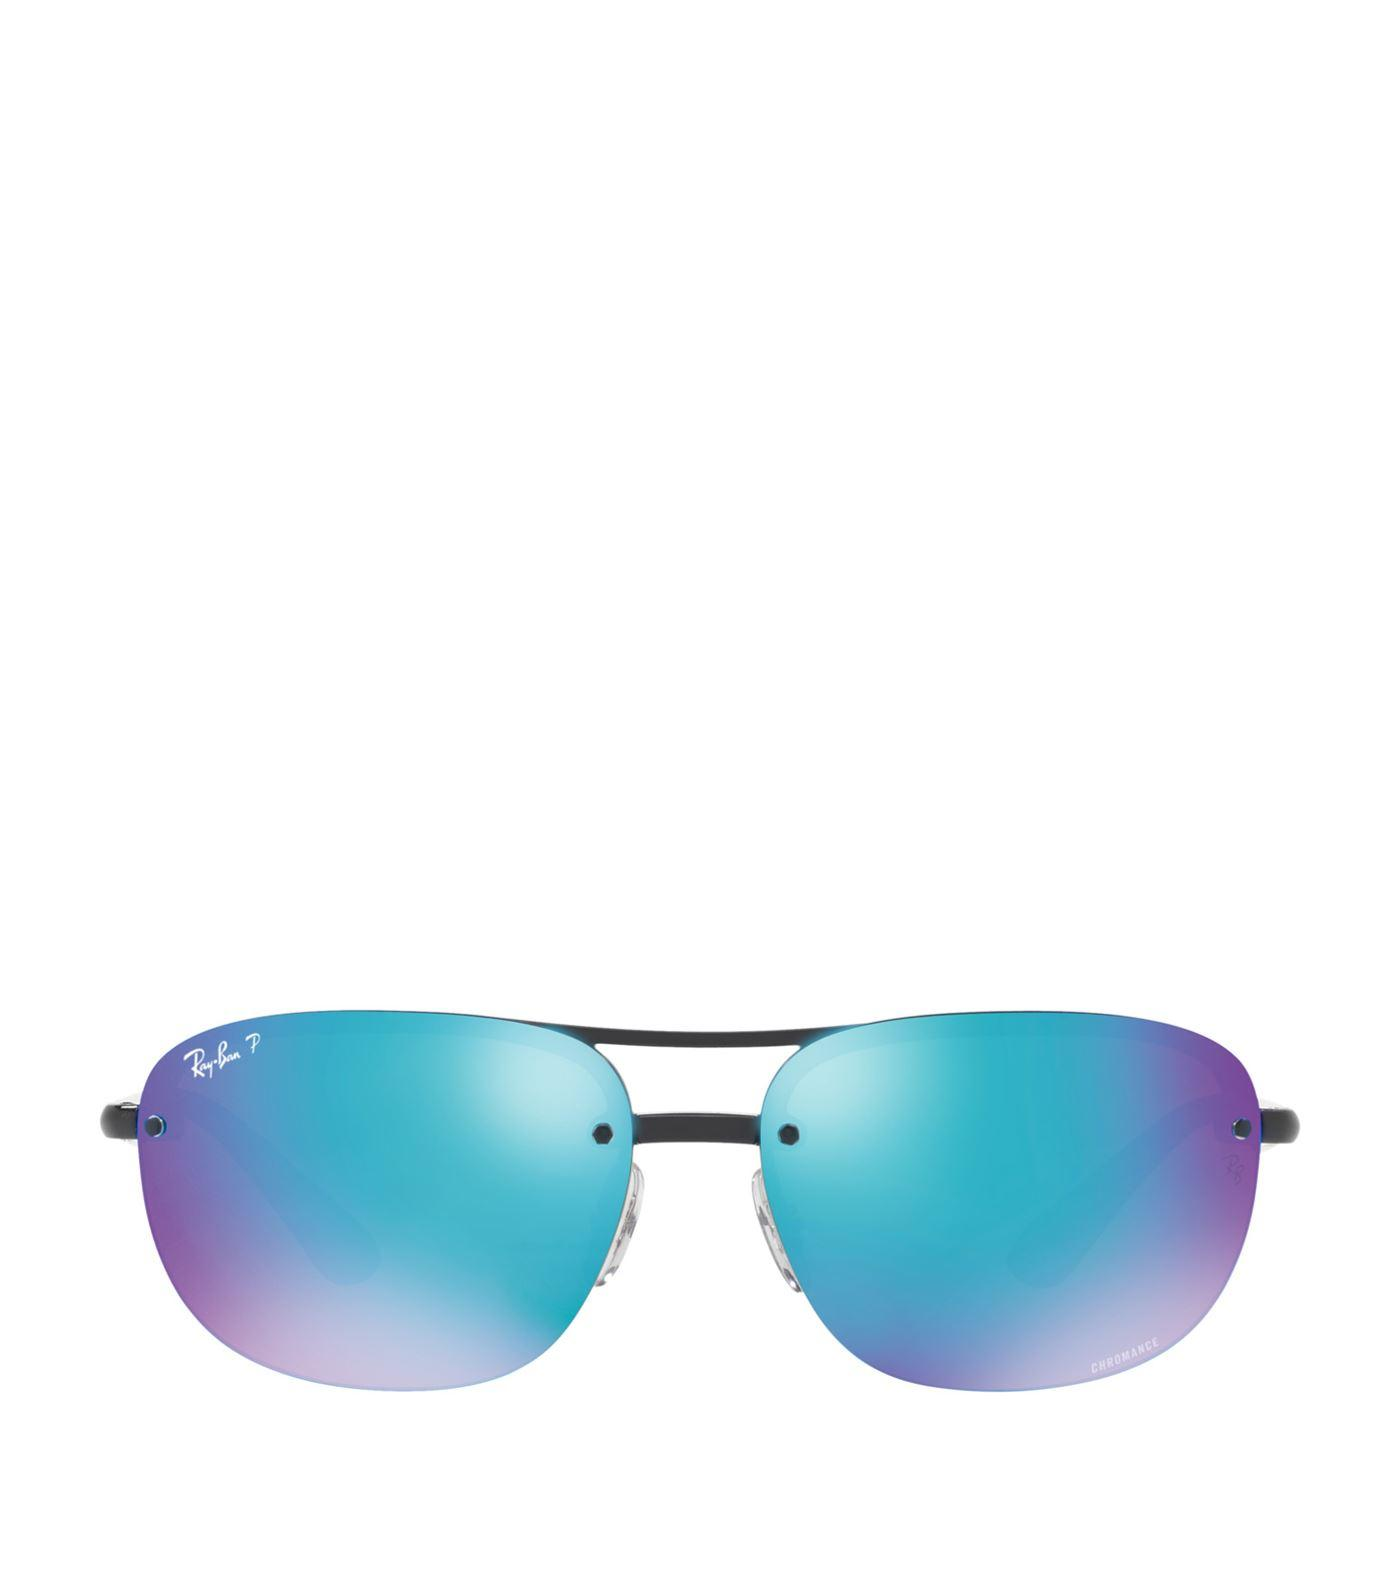 bcd3b97a7 Ray Ban Ray-Ban Man Rb4275Ch - Frame Color: Black, Lens Color: Blue ...